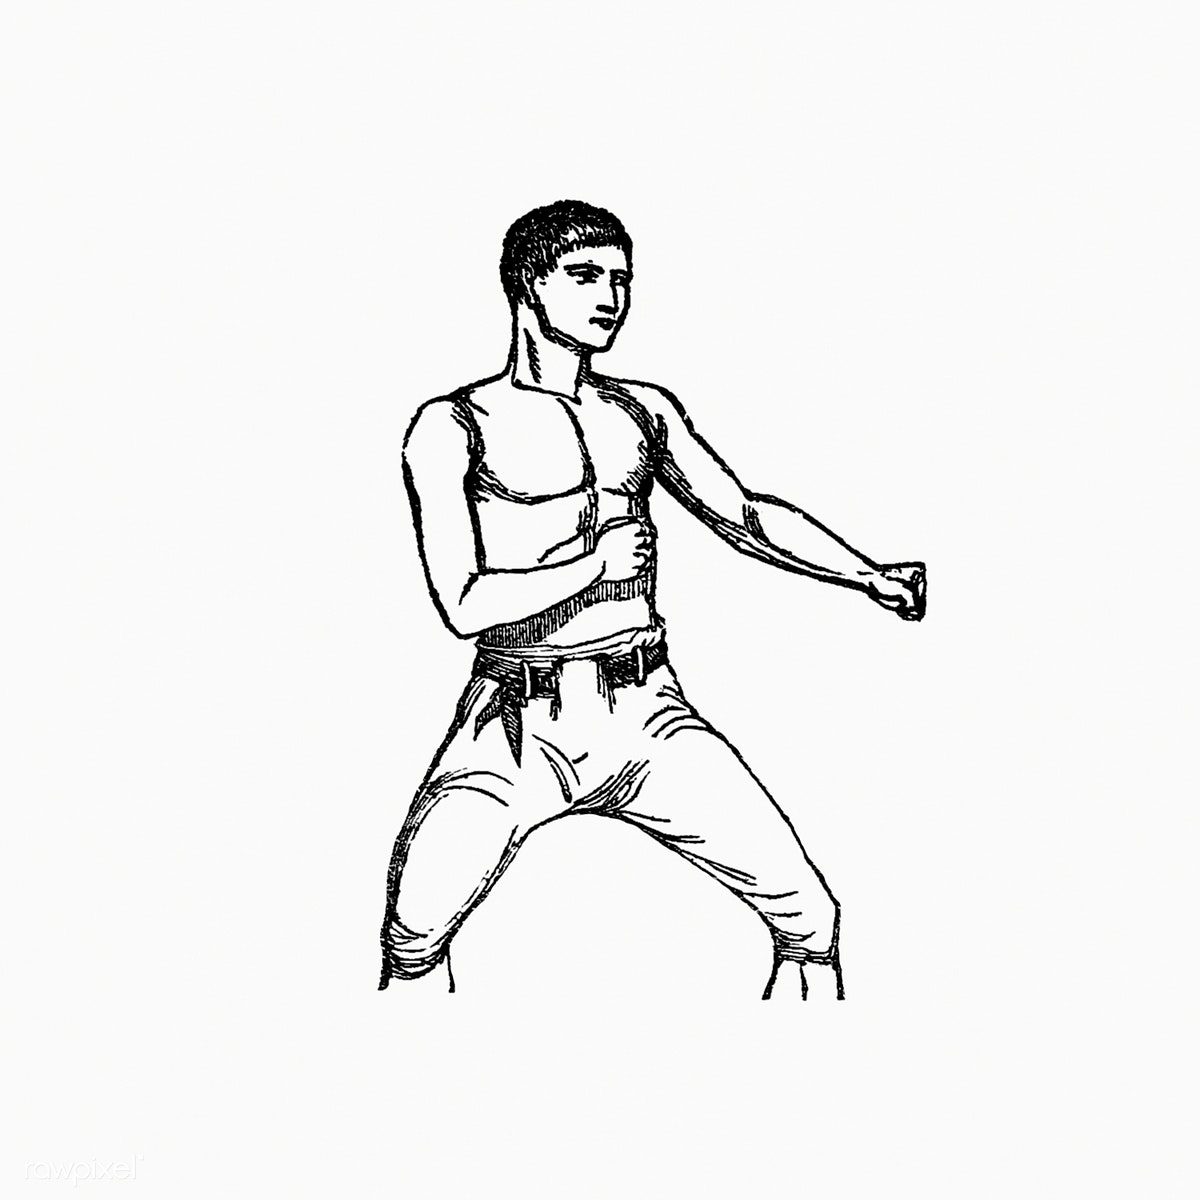 graphic free Boxing drawing vintage. Download premium illustration of